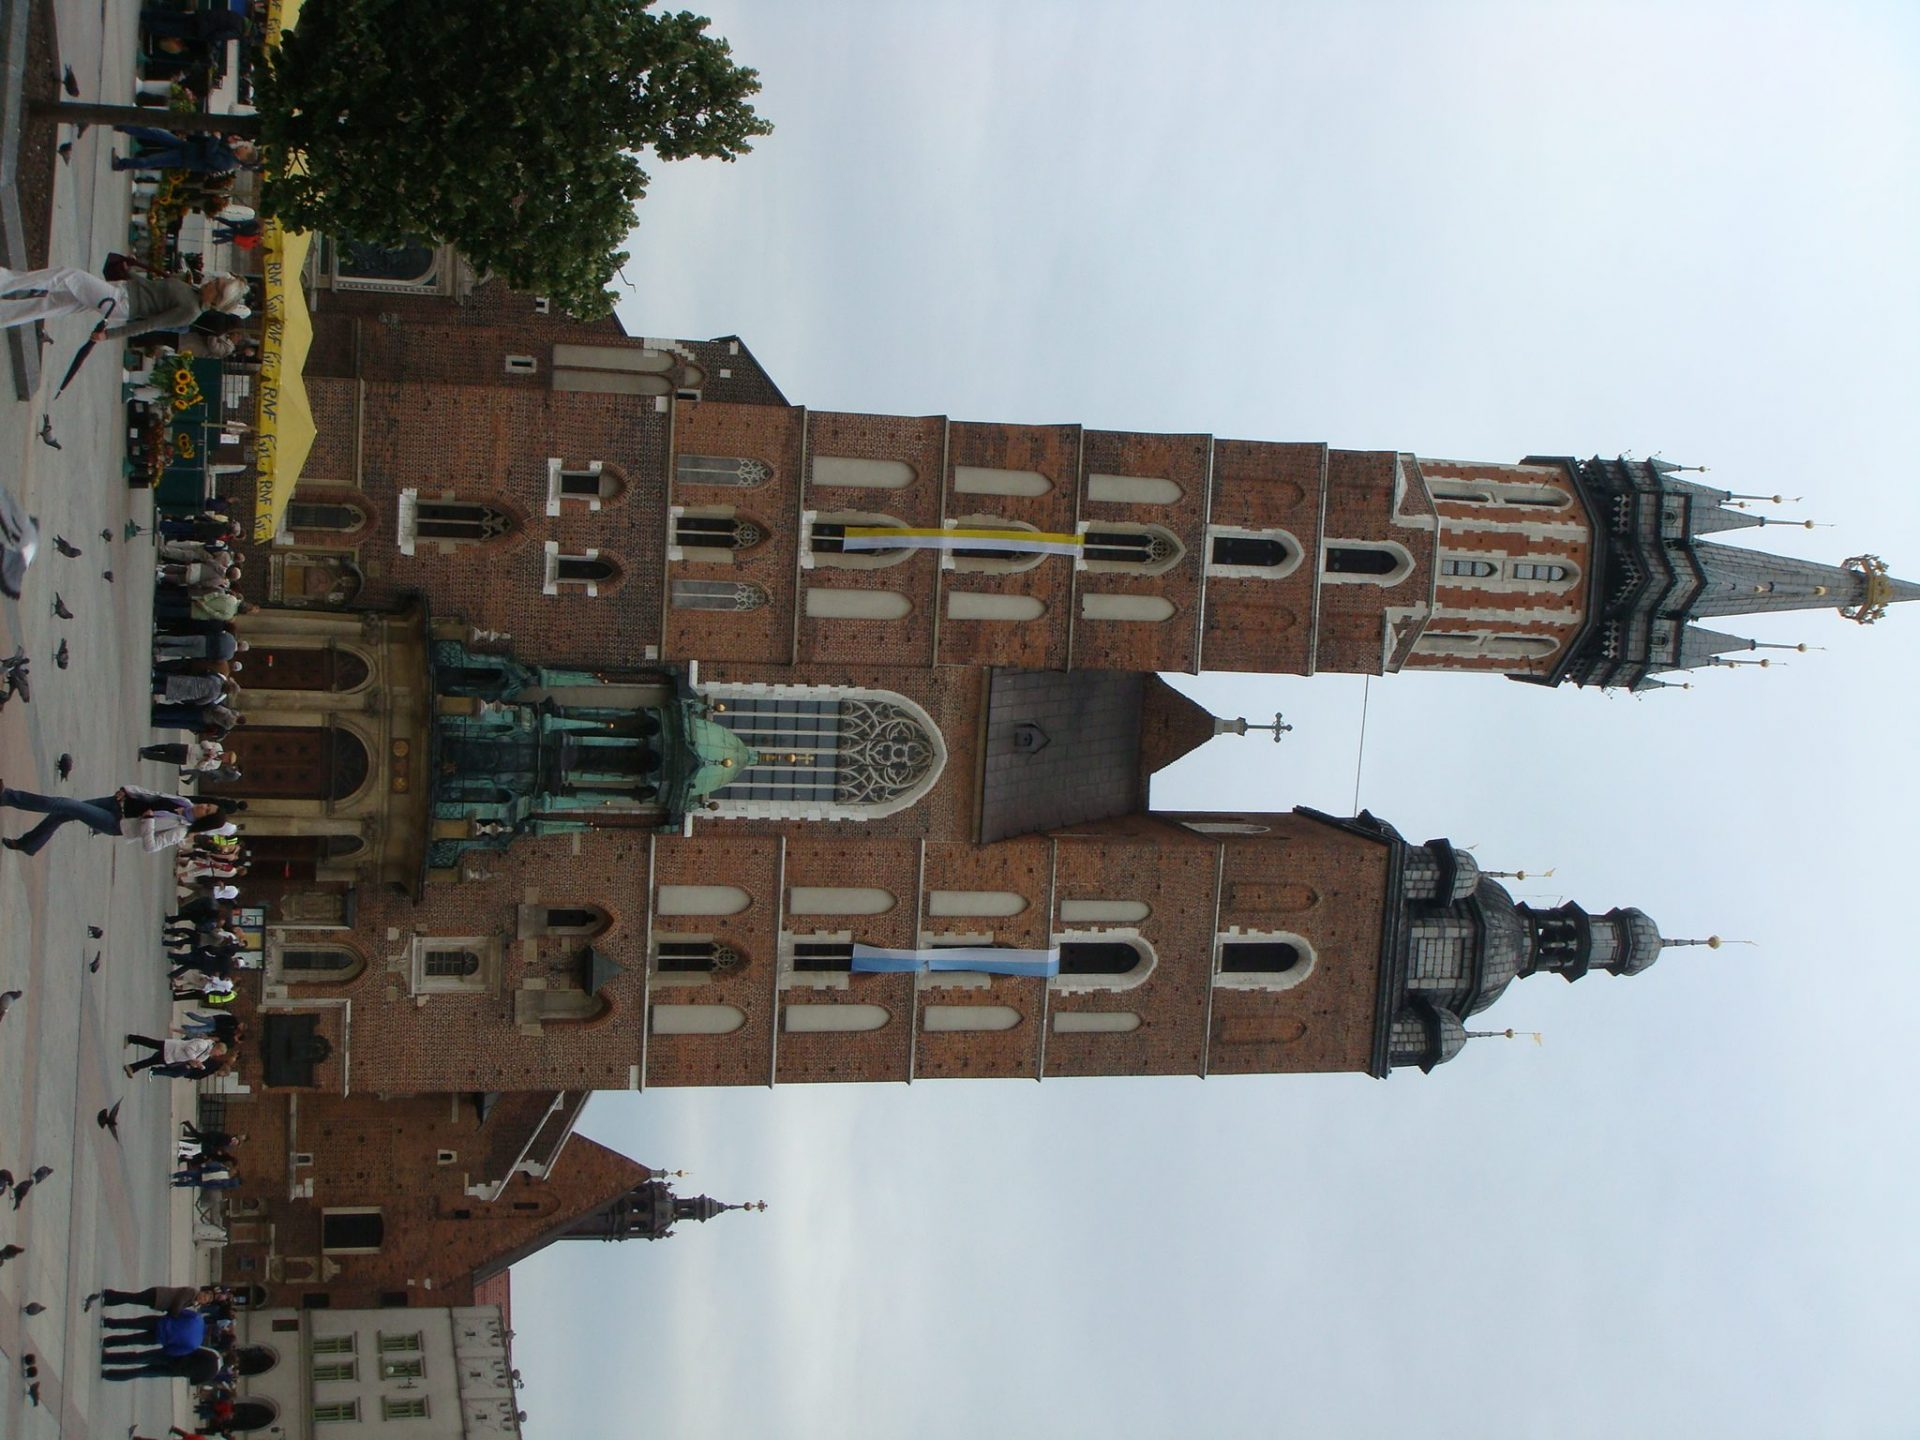 The Basilica of the Blessed Virgin. The Hejnal is played from the top of the left tower.